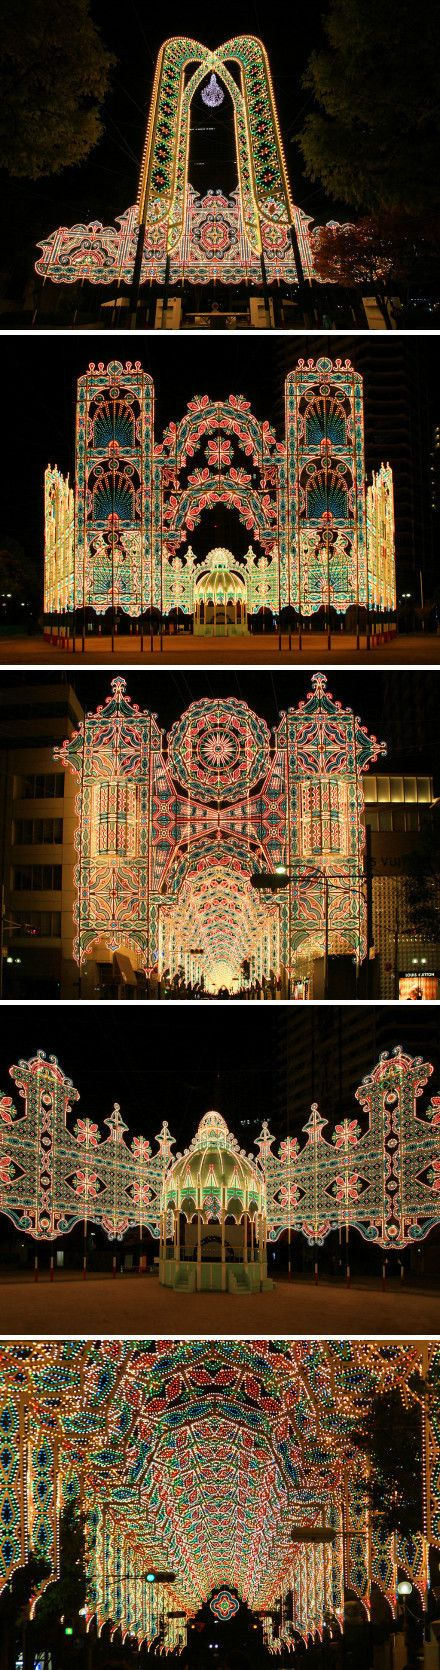 Kobe, Japan.  Kobe Luminarie Festival, in commemoration of the Great Hanshin Earthquake of 1995.